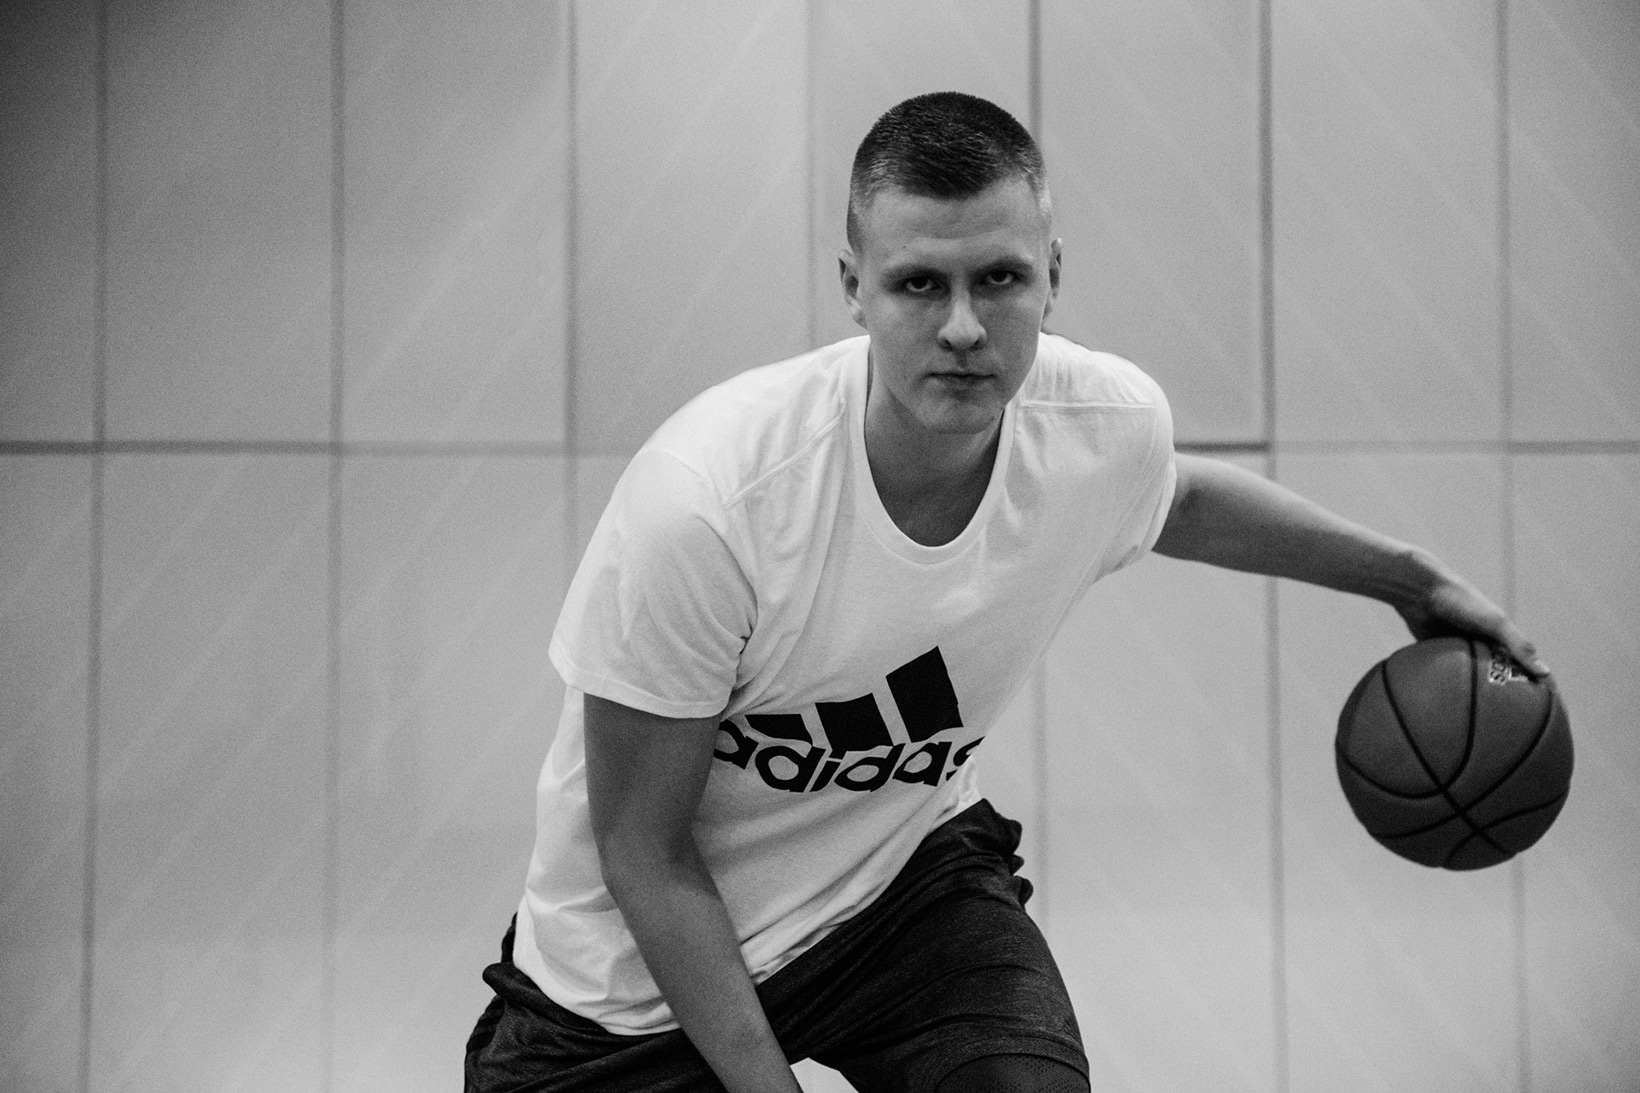 New York Knicks' Standout, Kristaps Porzingis, Leaves Nike for adidas